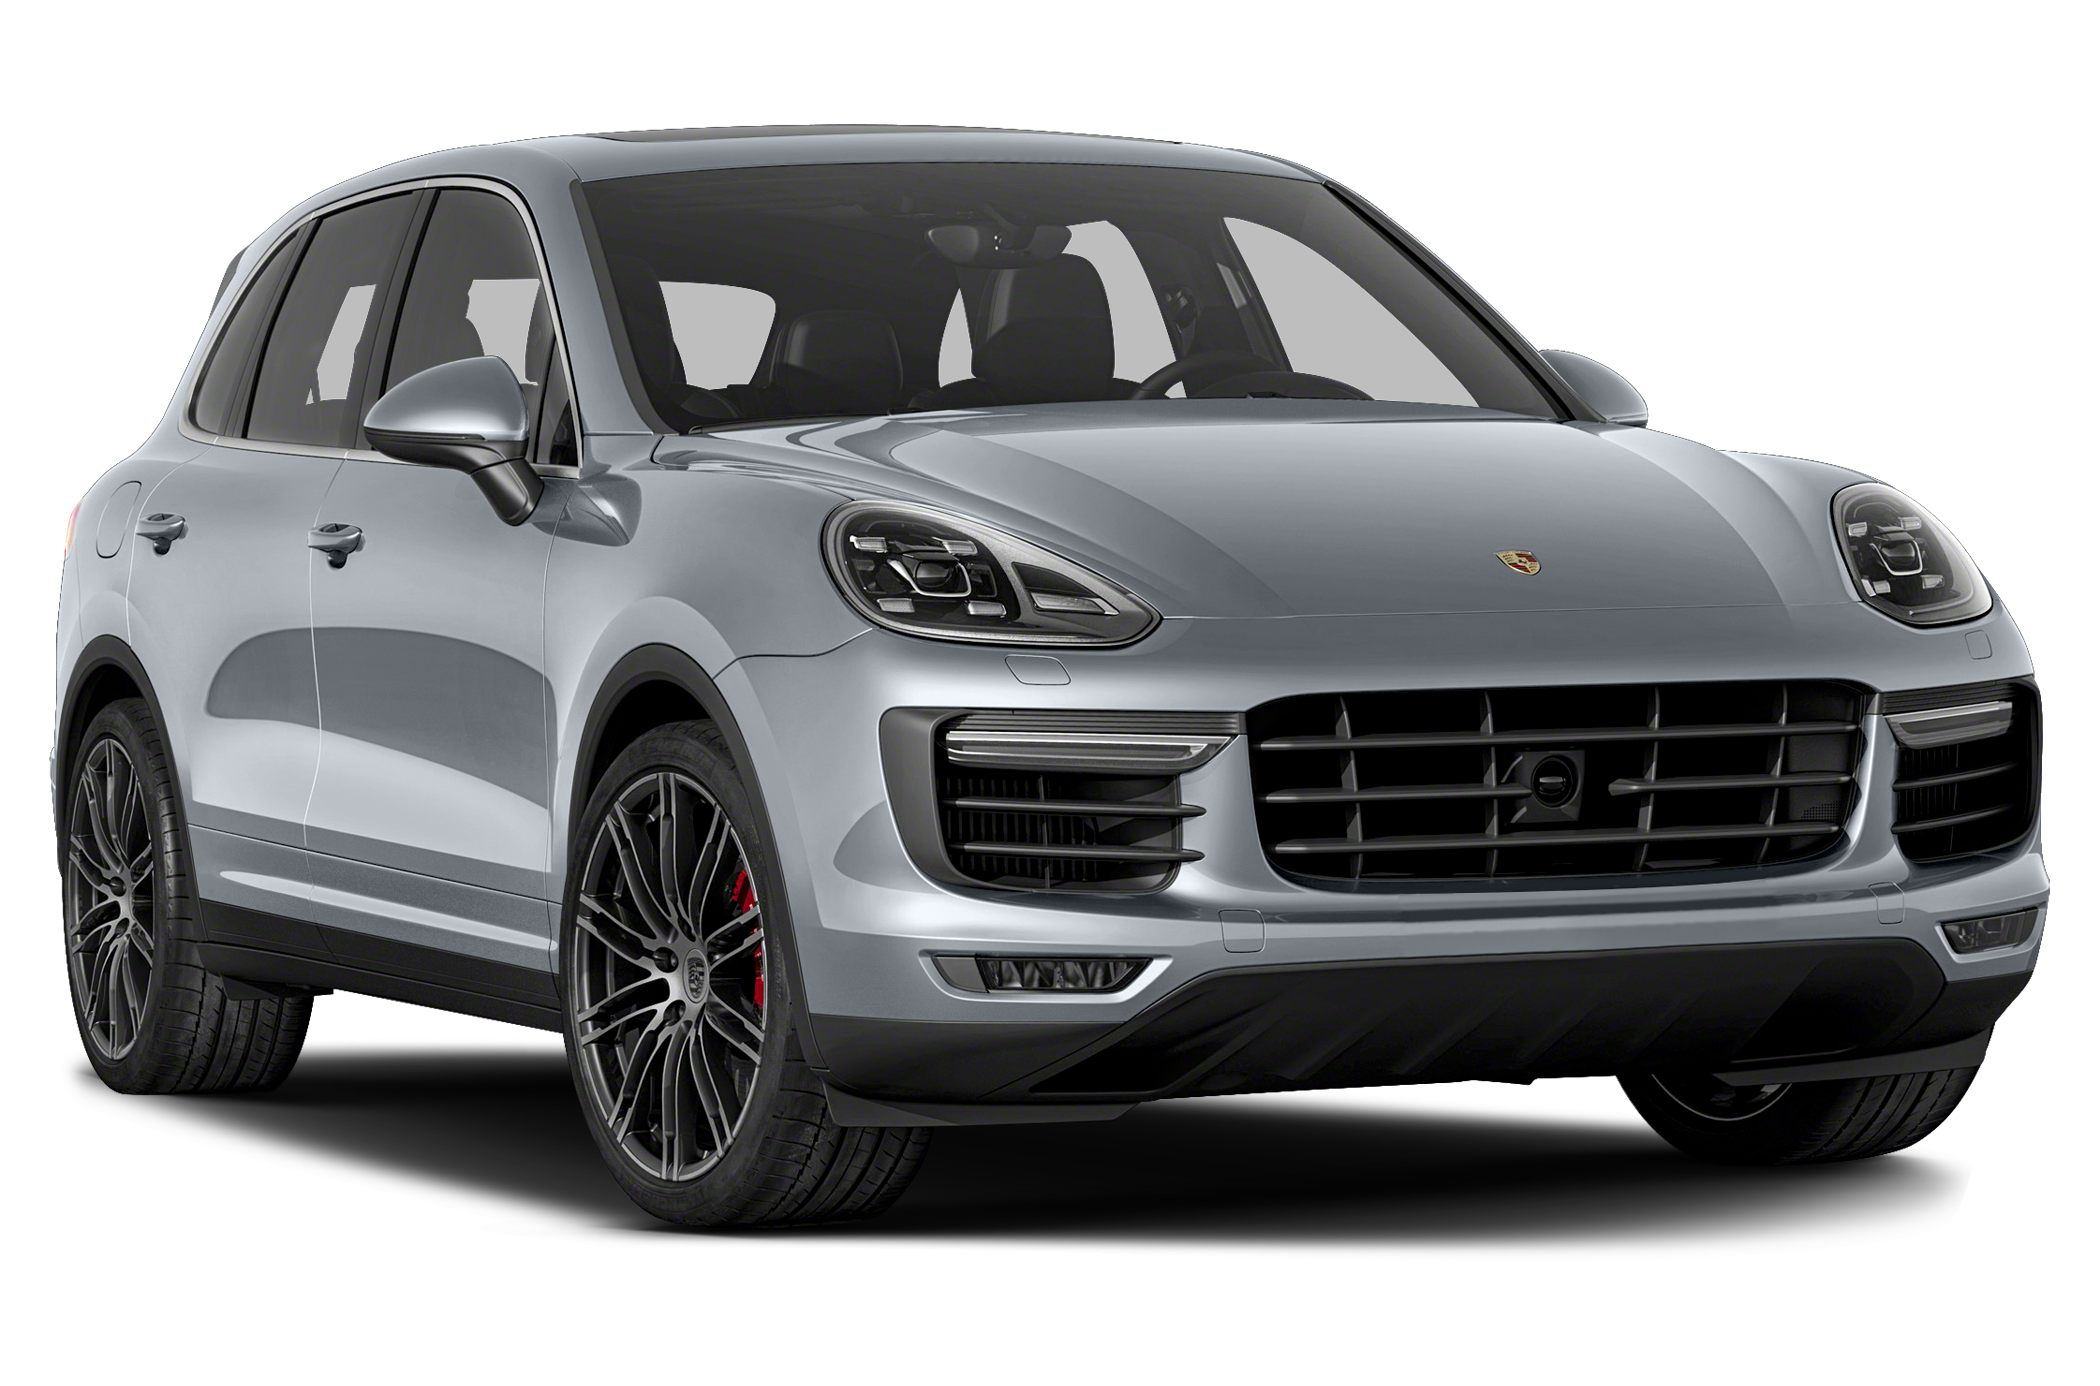 2015 Porsche Cayenne Diesel SUV for sale in Pasadena for $66,295 with 16 miles.